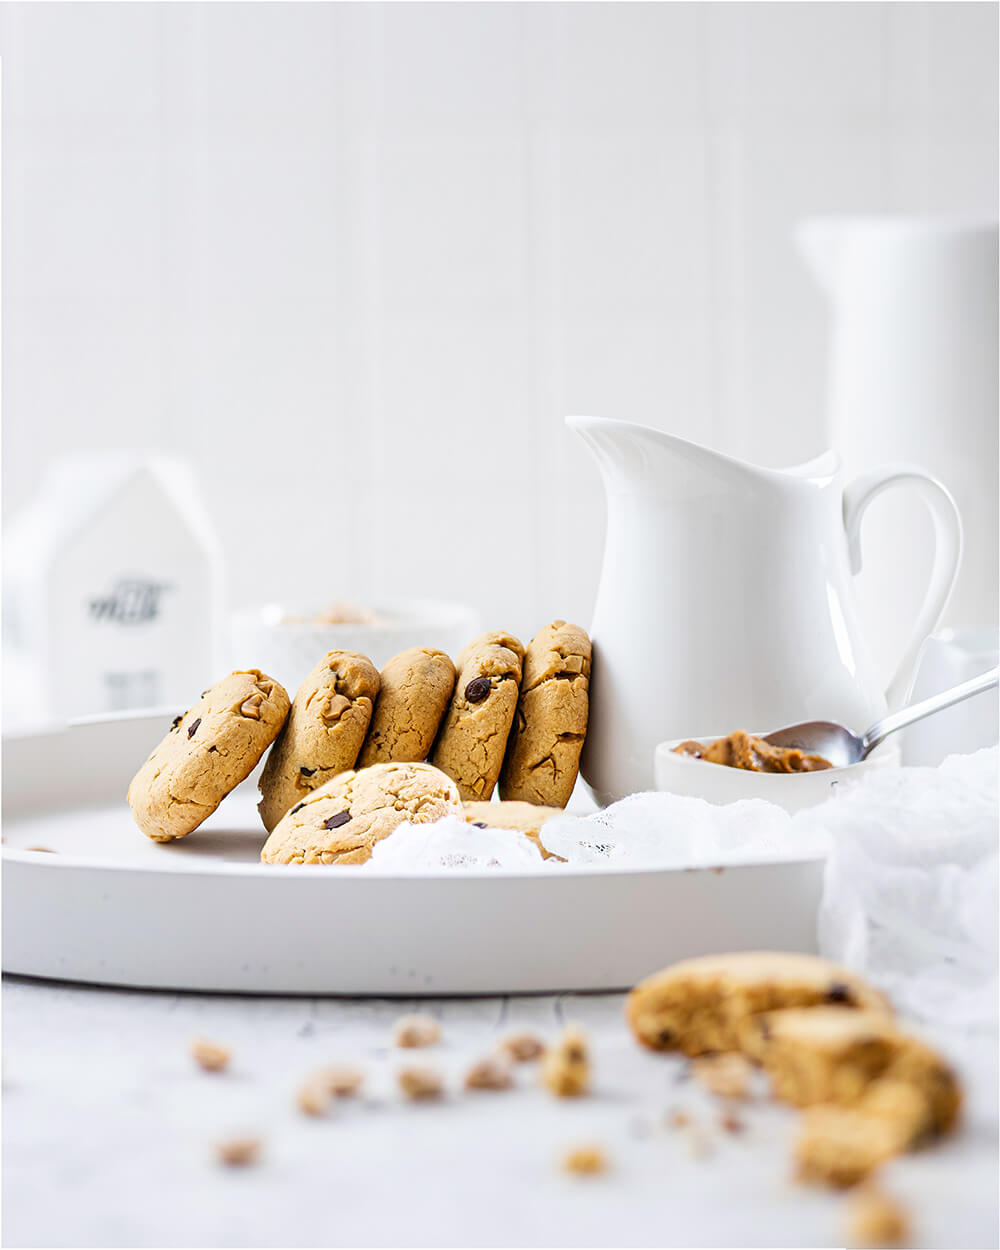 Erdnussbutter-Cookies mit Chocolate Chips